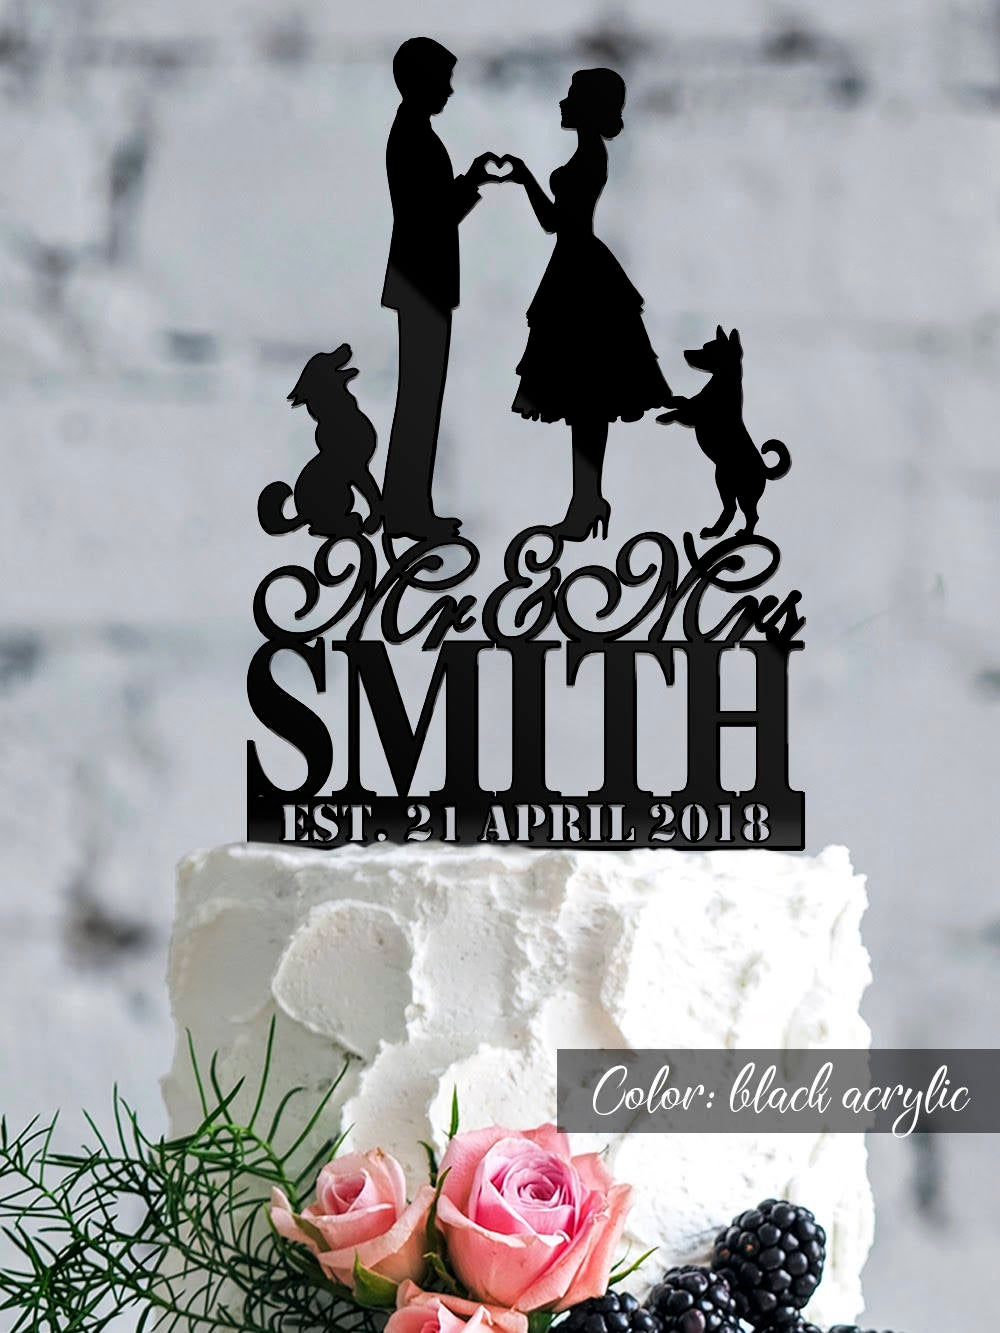 Wedding Cake Topper With Bride & Groom Wedding Date. Cake Topper. Custom Silhouette Personalized